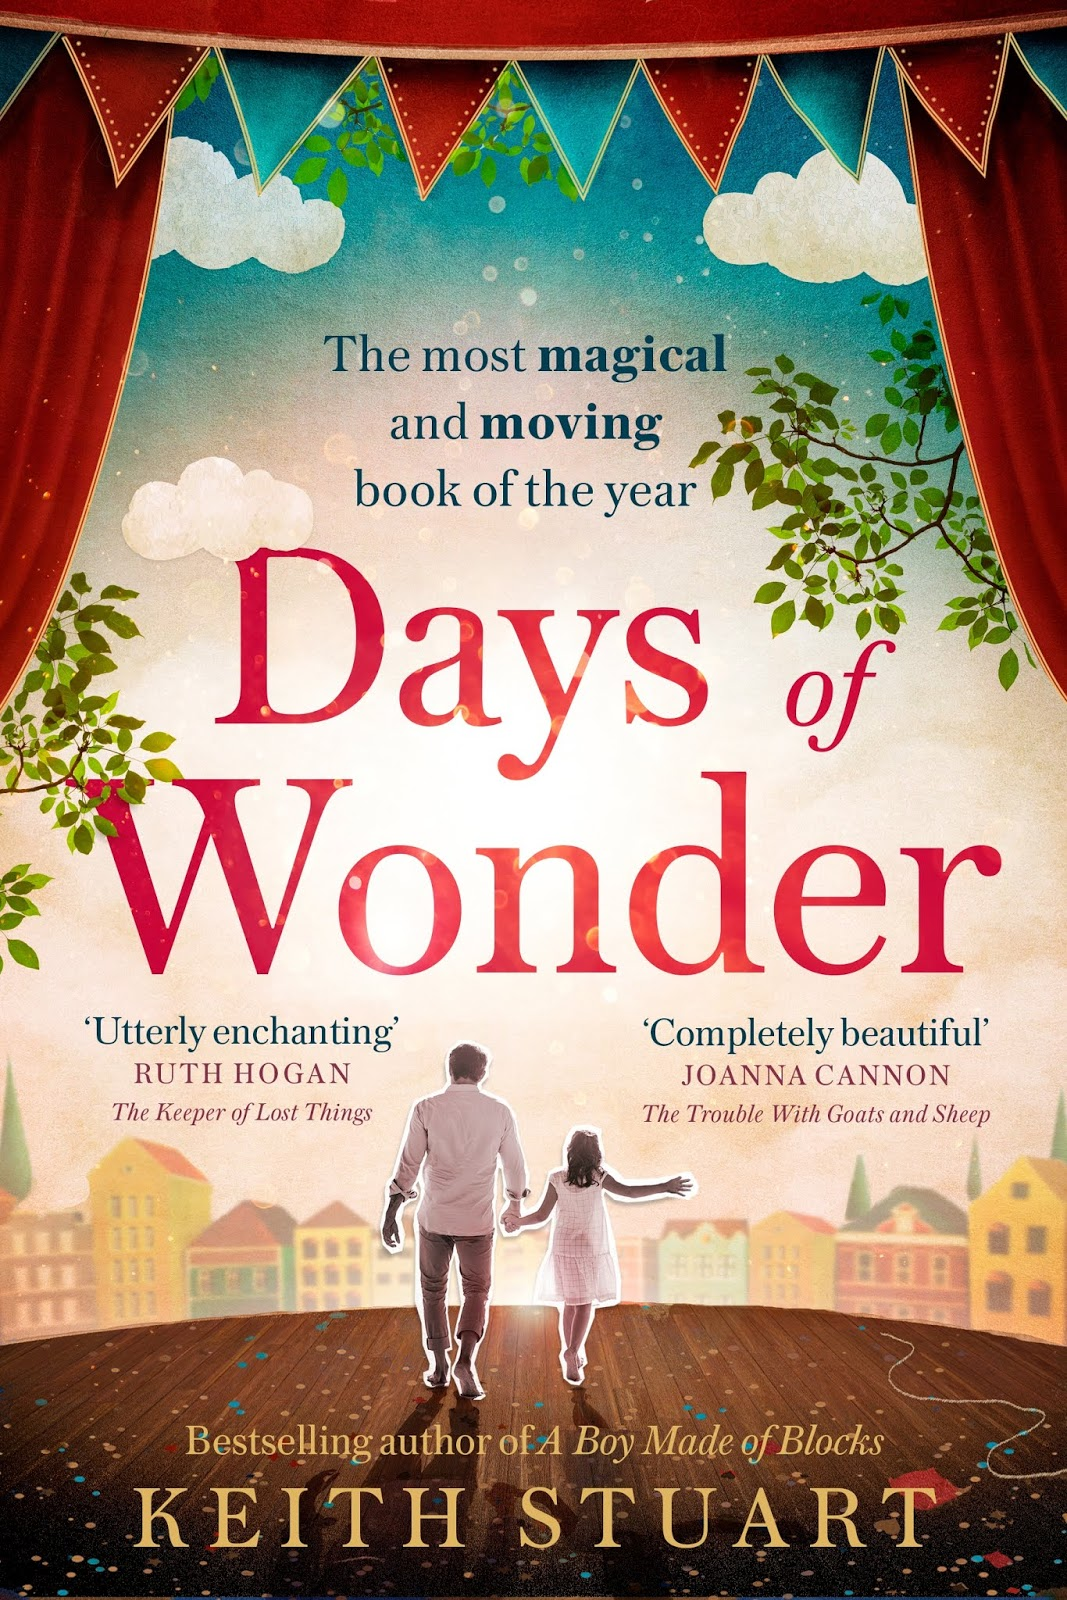 Cover image of 'Days of Wonder' book with father and daughter image on stage